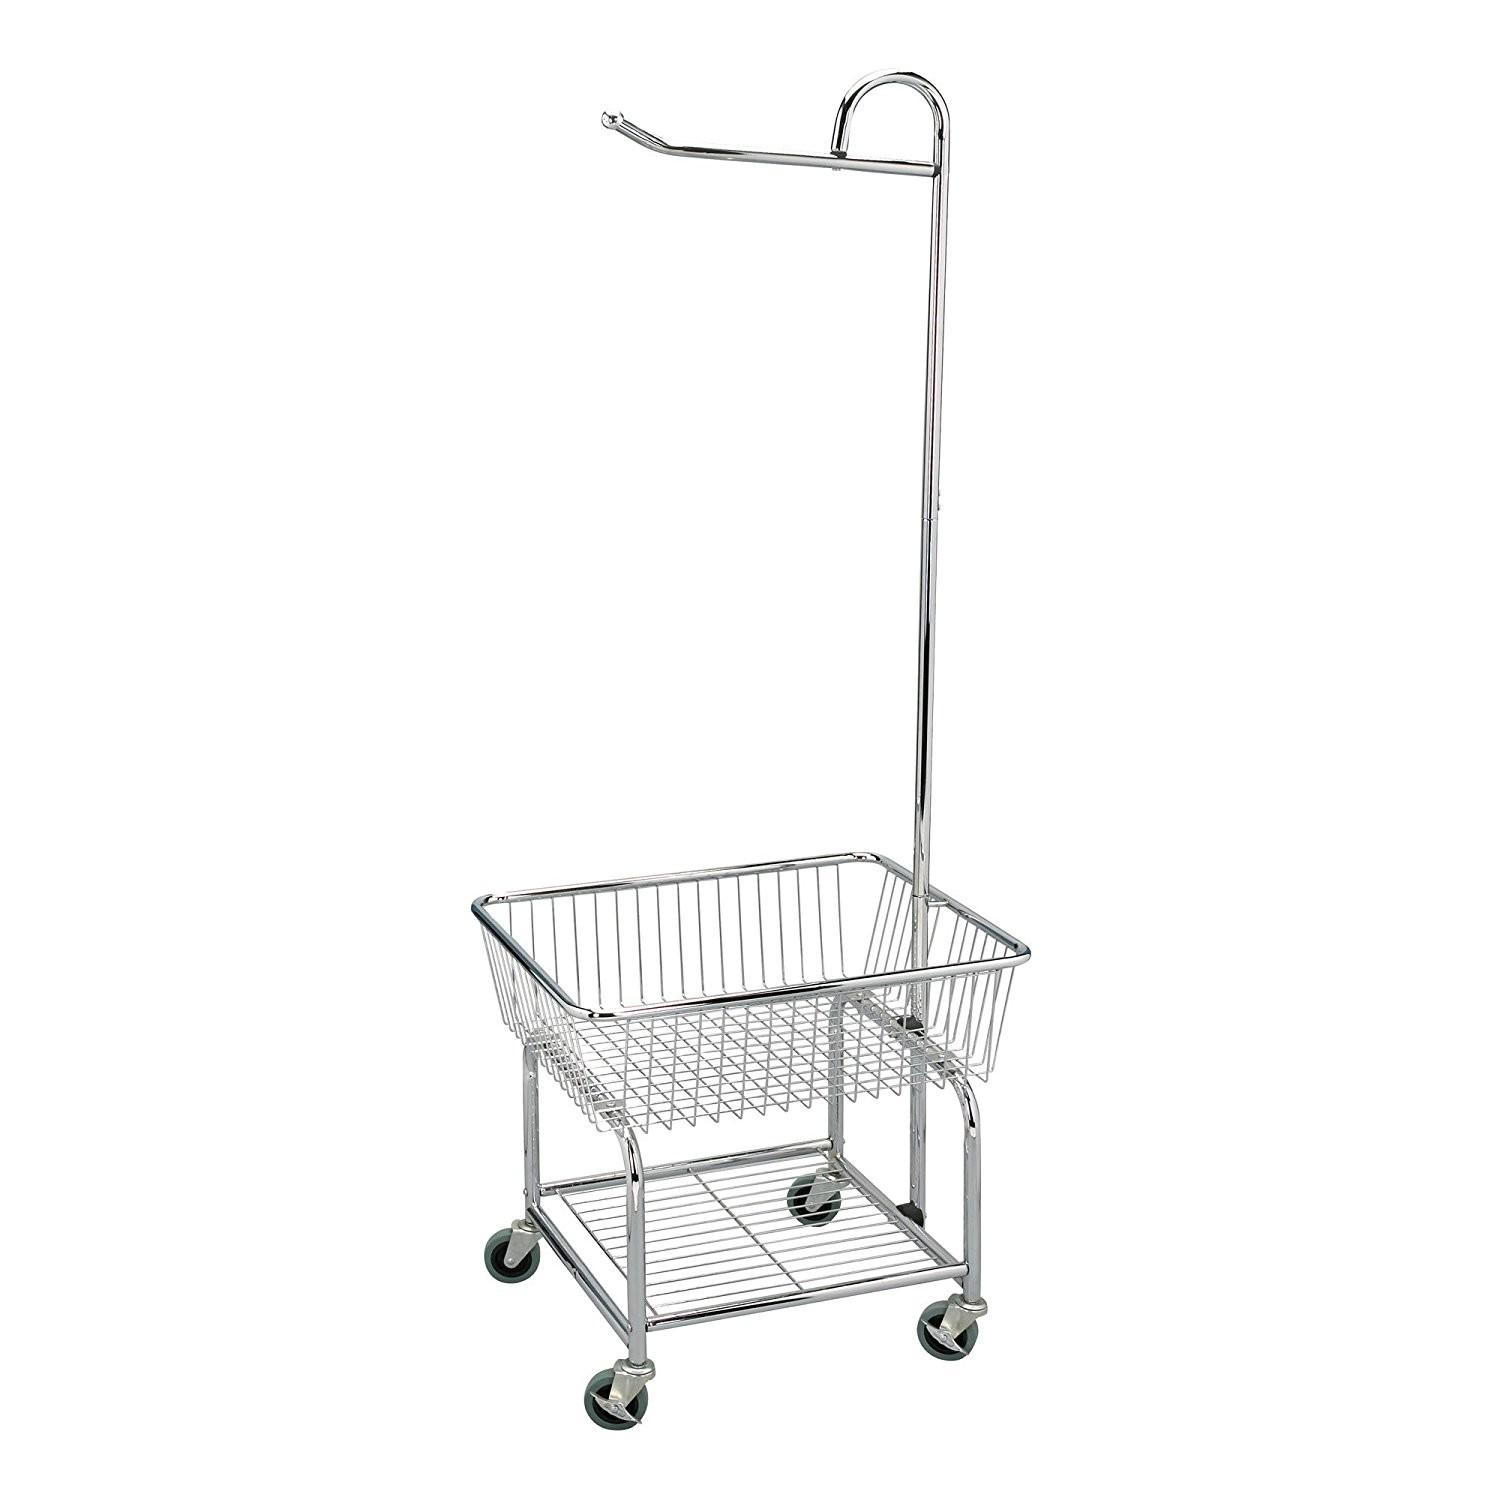 Household Rolling Laundry Butler Cart Rack Hanging Clothes